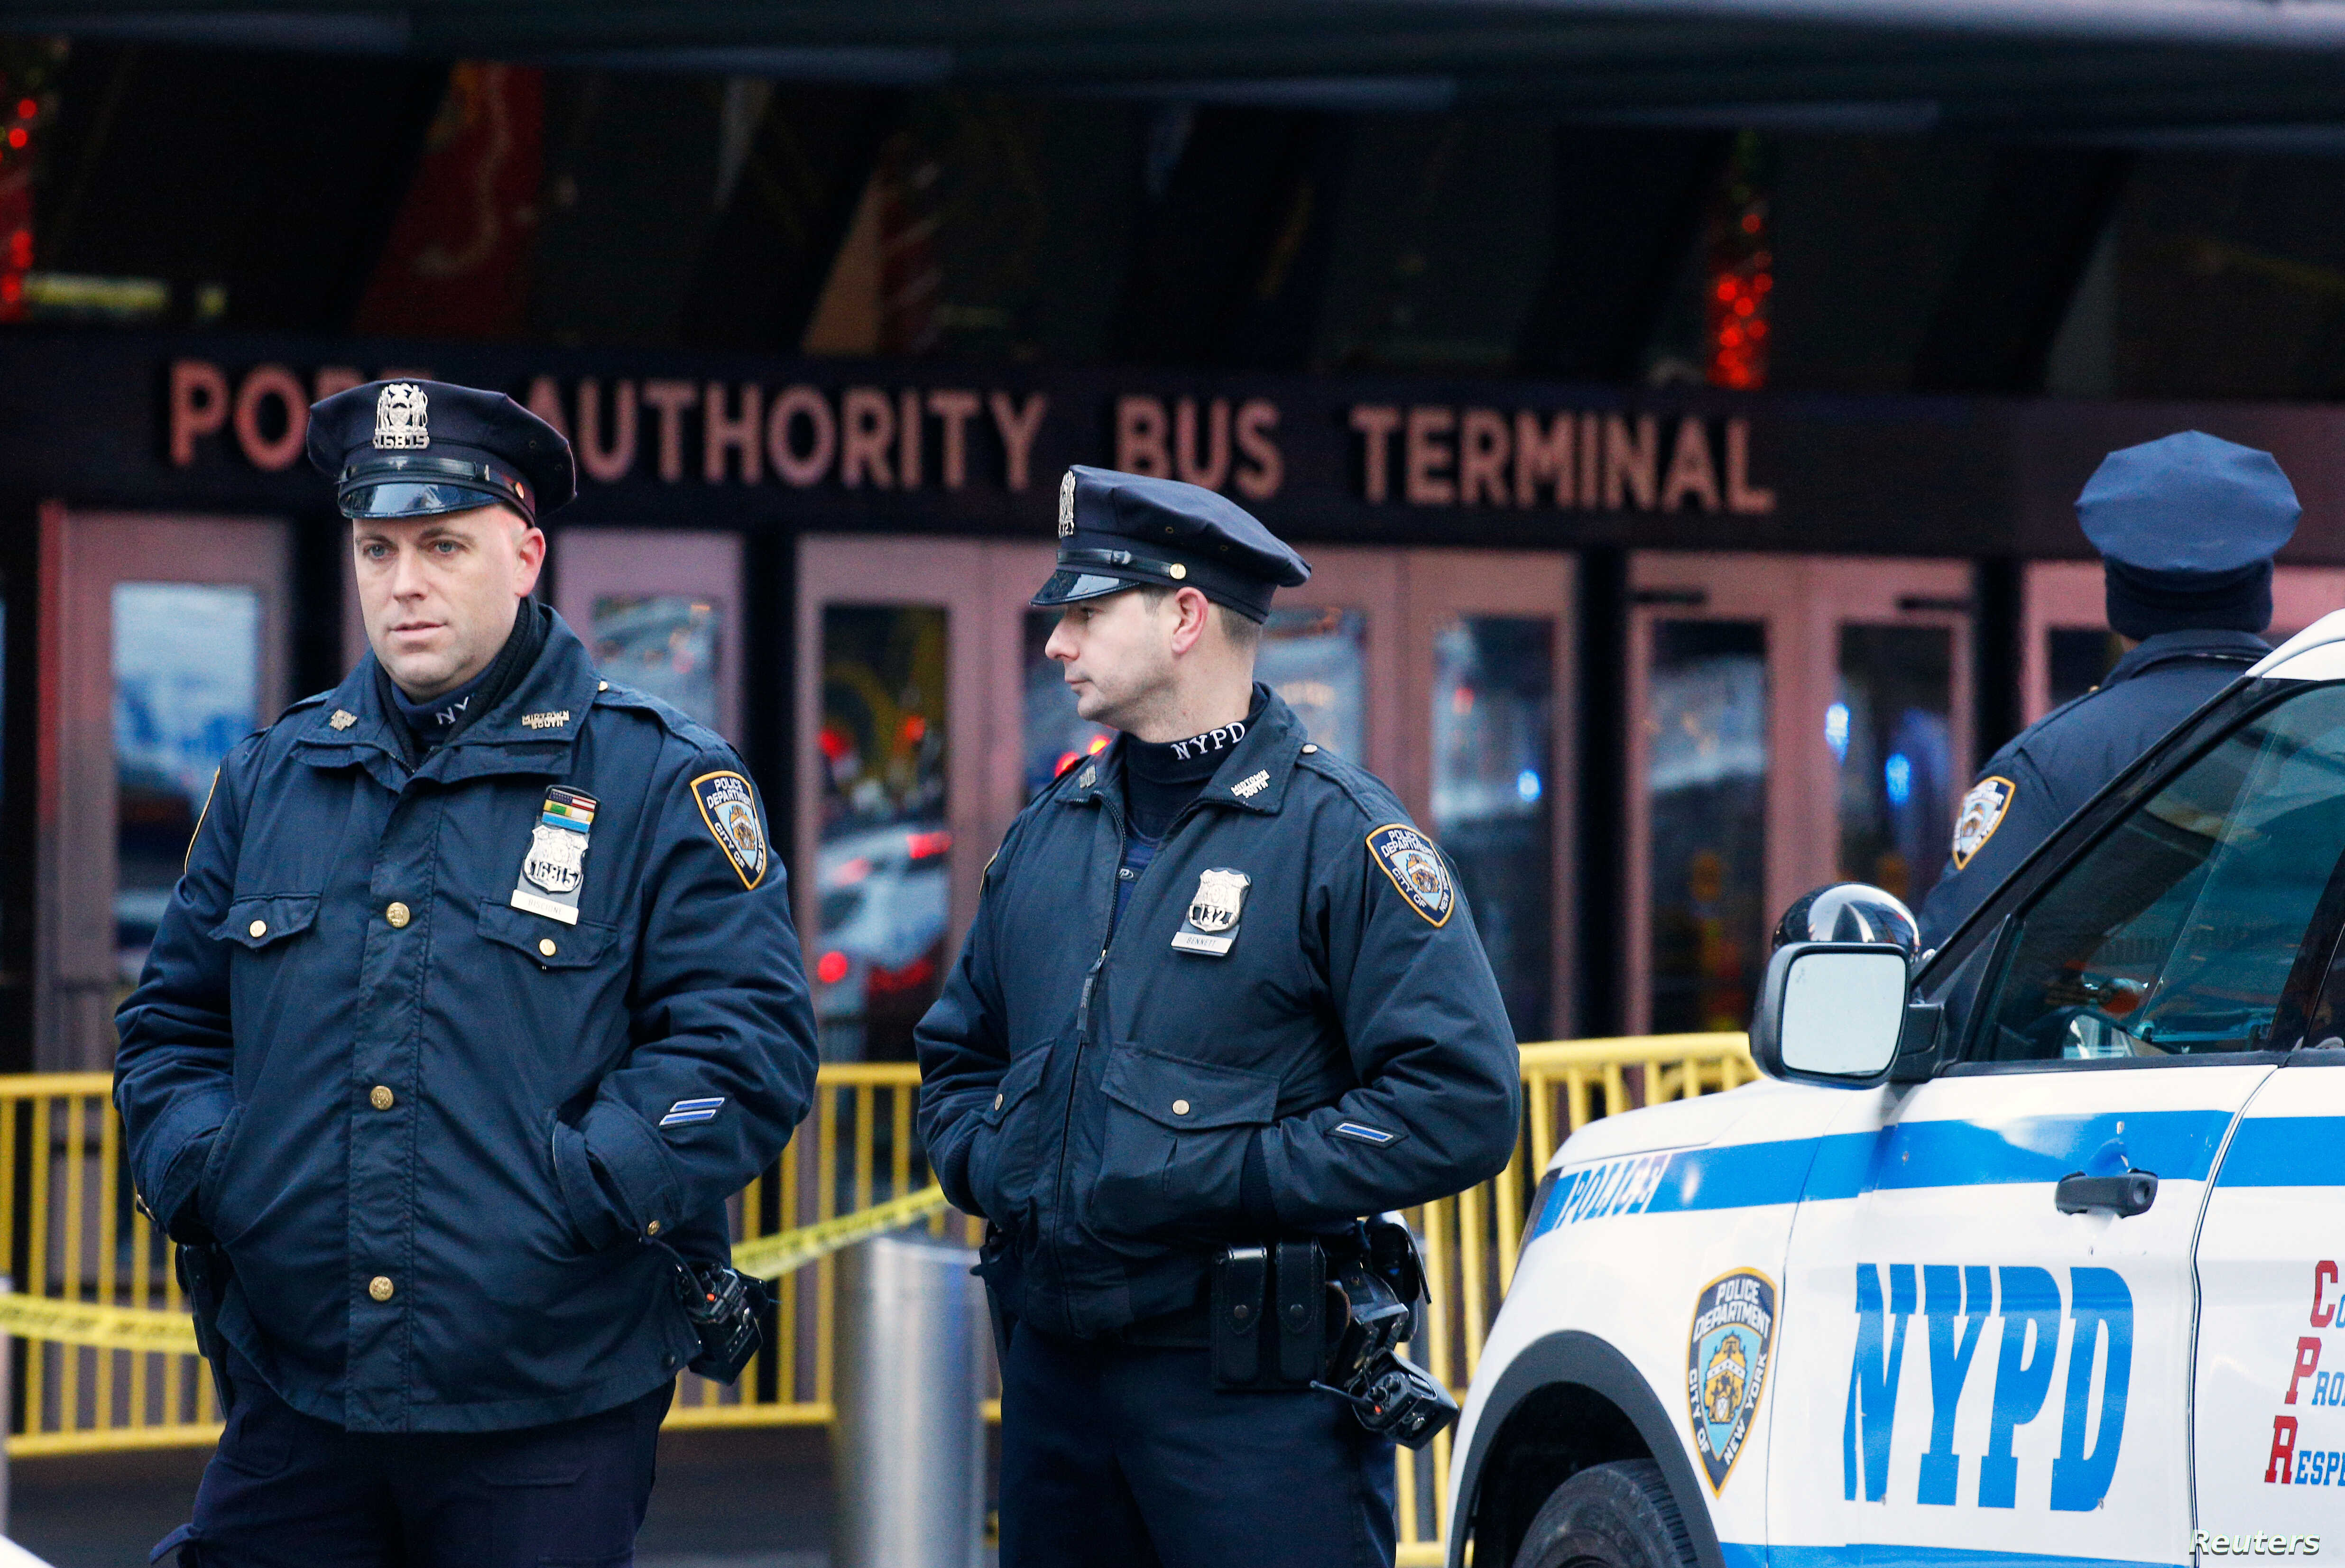 Police officers stand outside the New York Port Authority Bus Terminal in New York City, U.S. Dec. 11, 2017 after reports of an explosion.